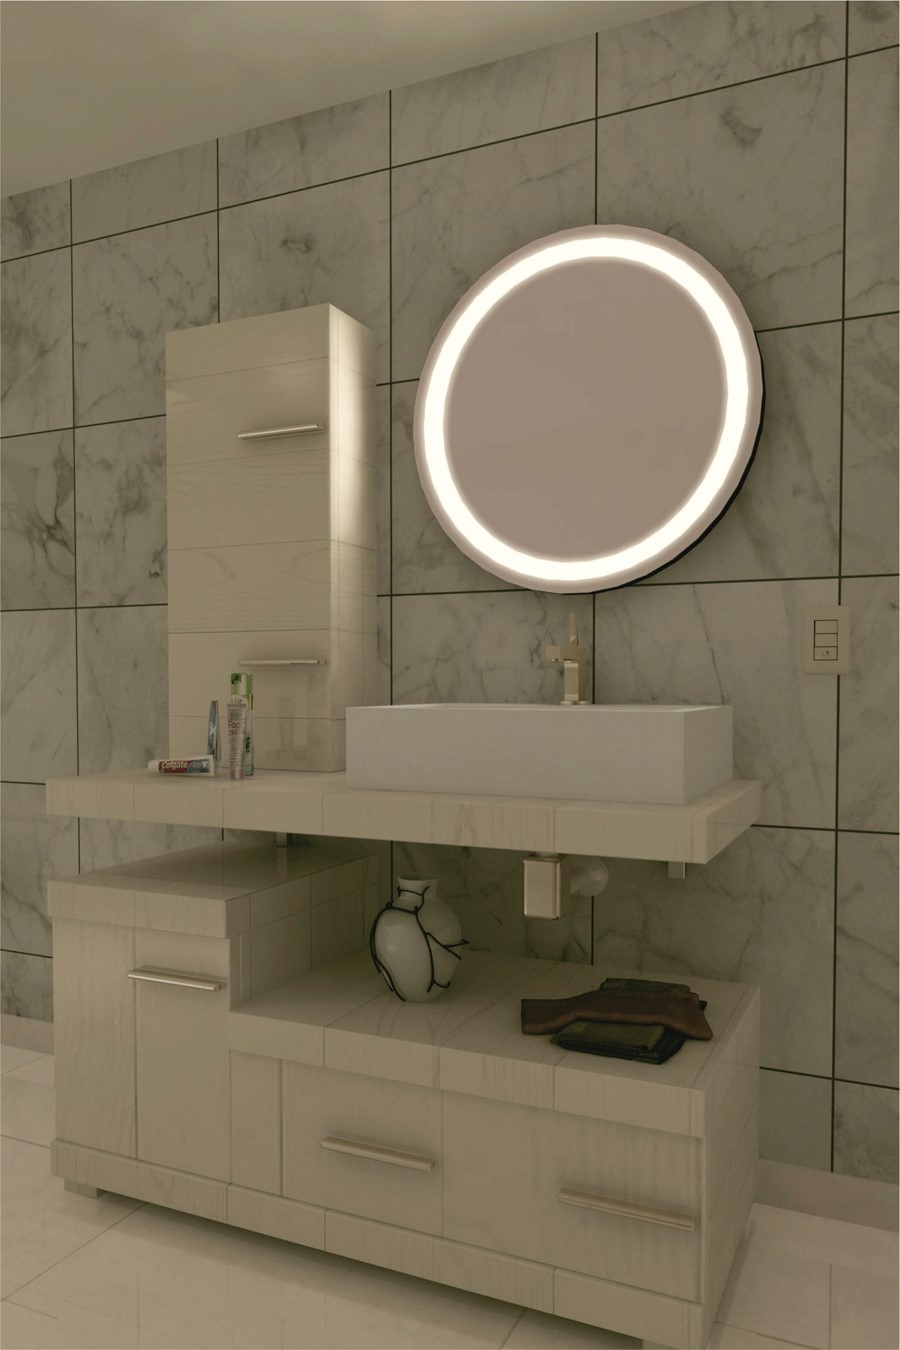 espejo con luz led integrada mod 110 gldesign